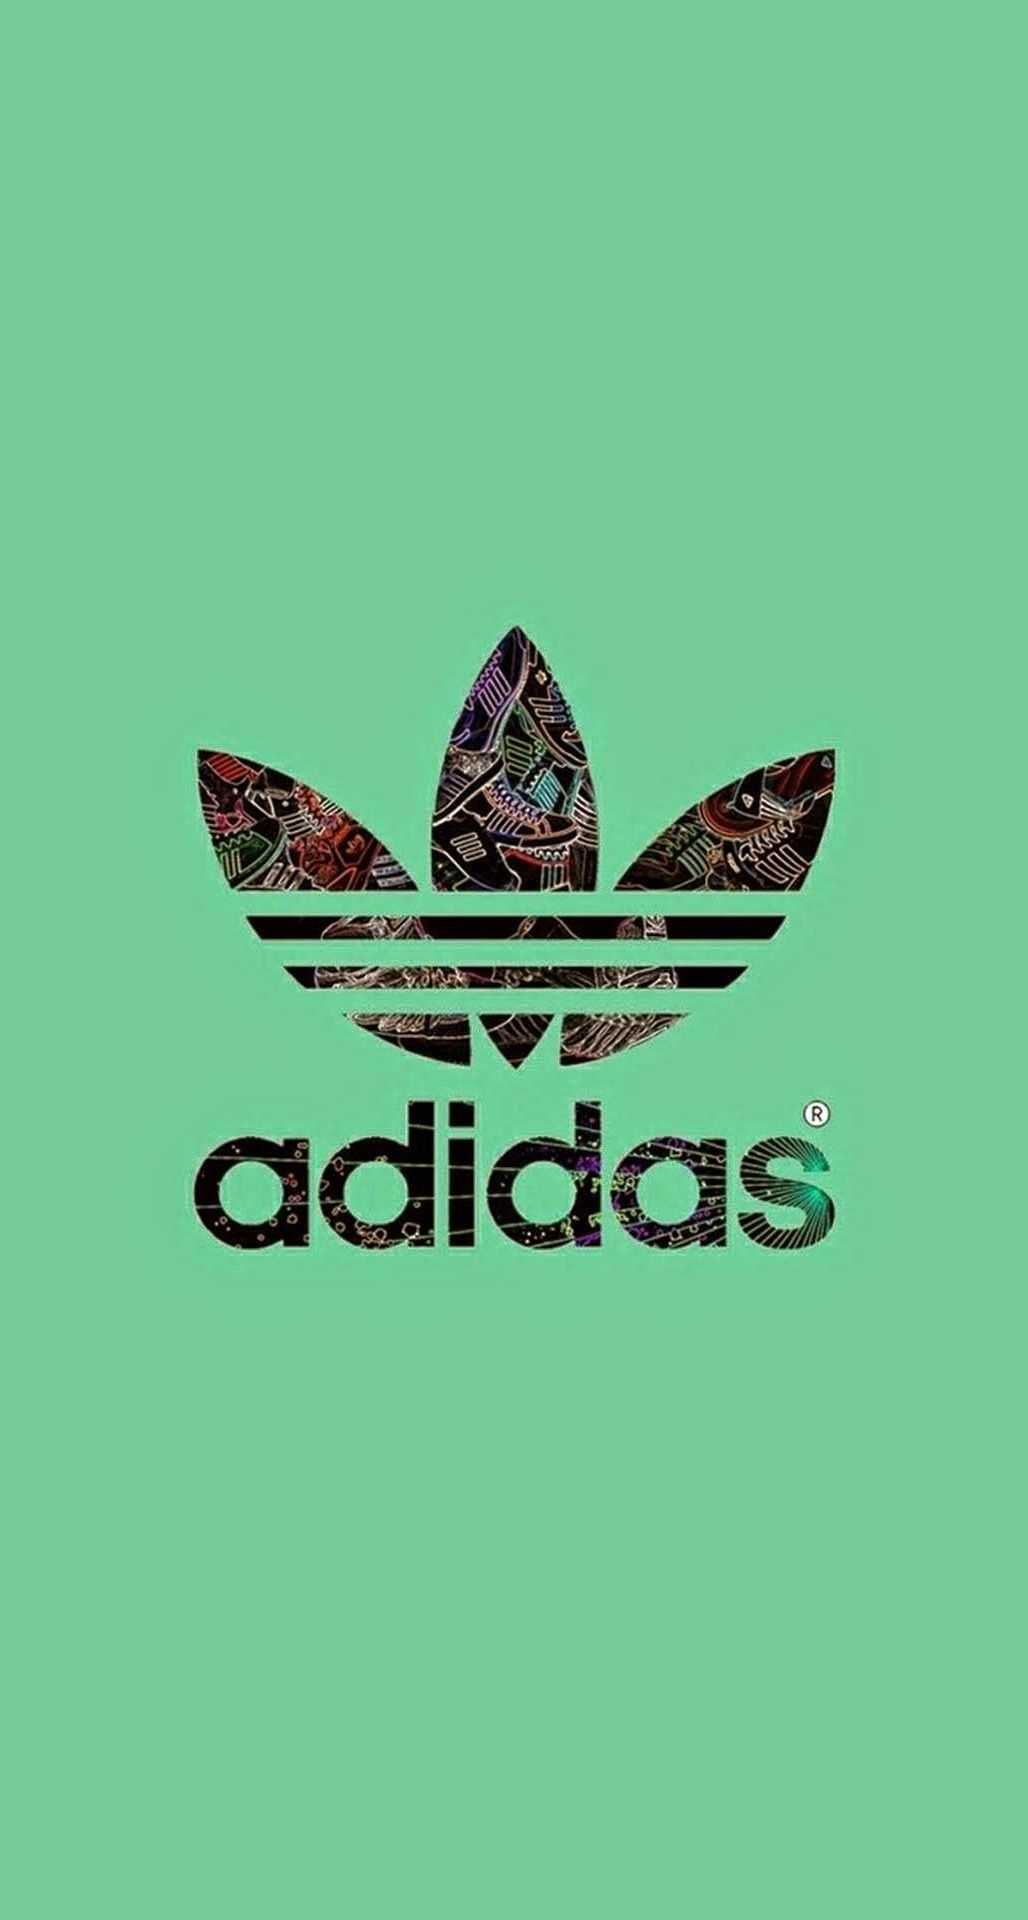 17 Green Adidas Logo Wallpapers On Wallpapersafari